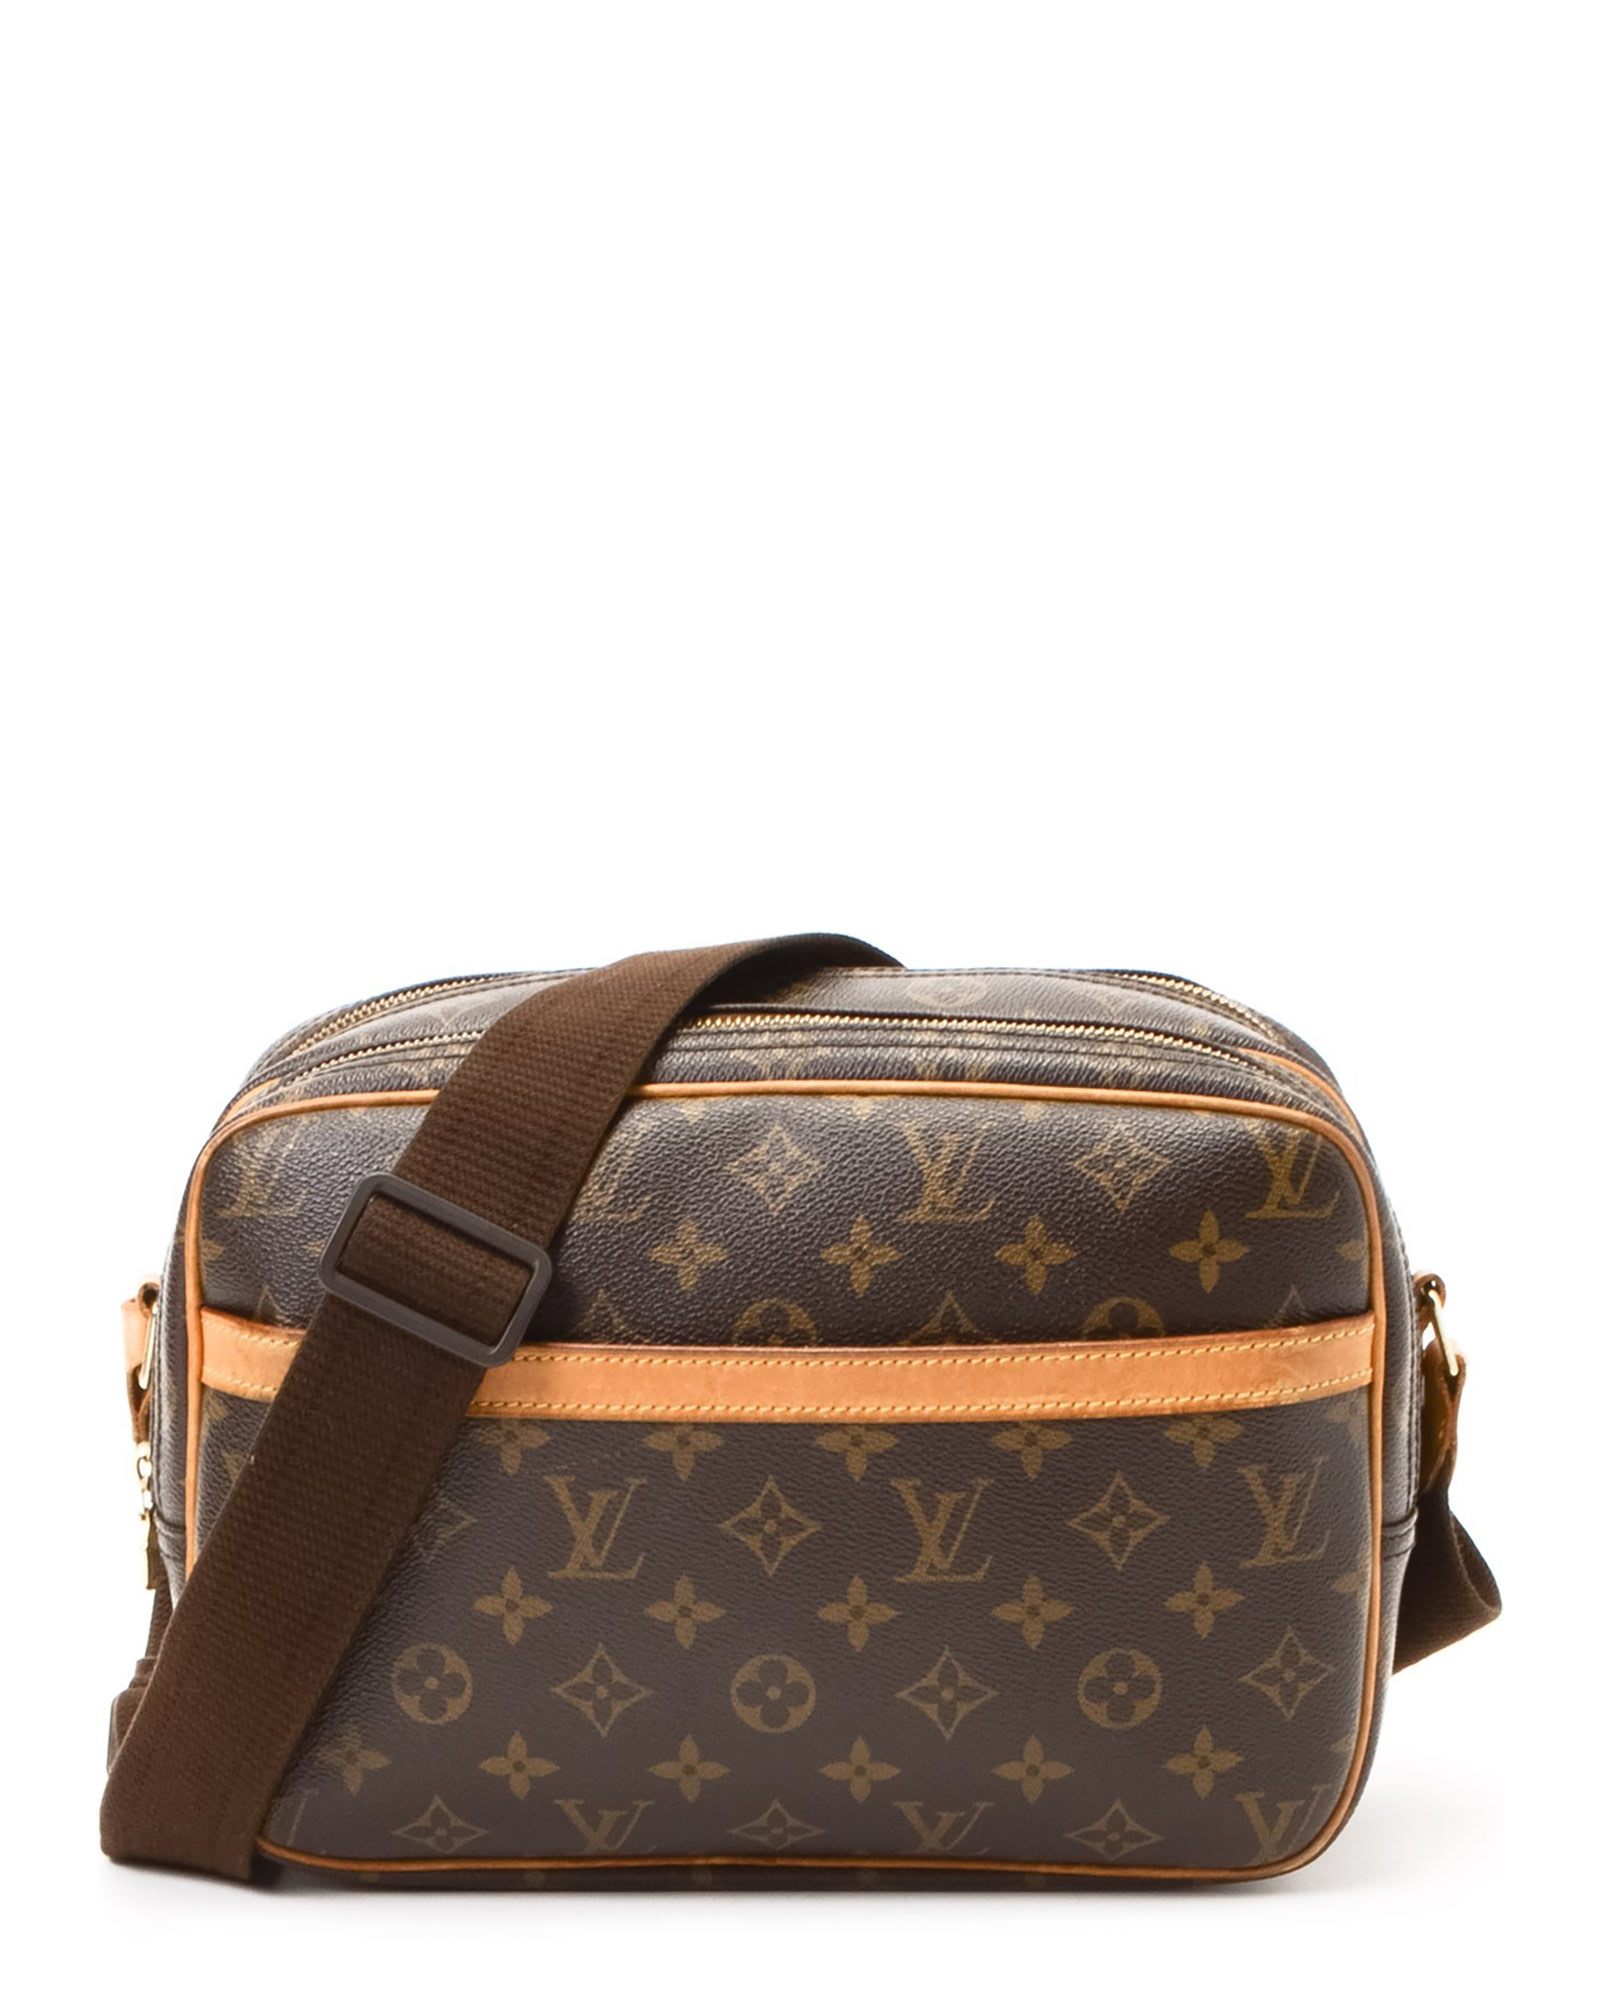 Lastest LOUIS VUITTON Messenger Bag